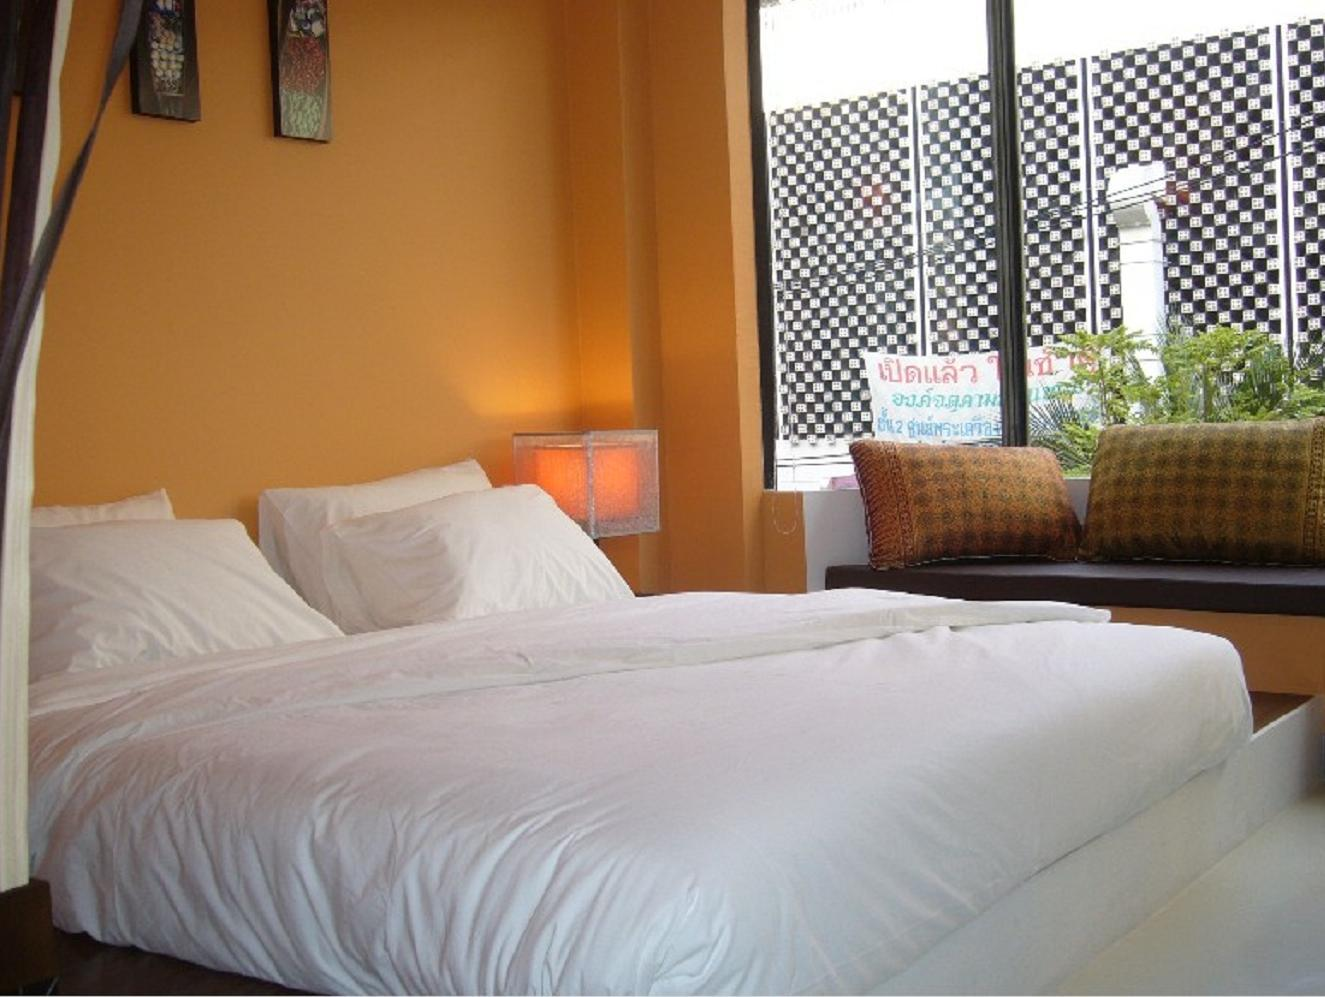 The Boutique Place Hotel